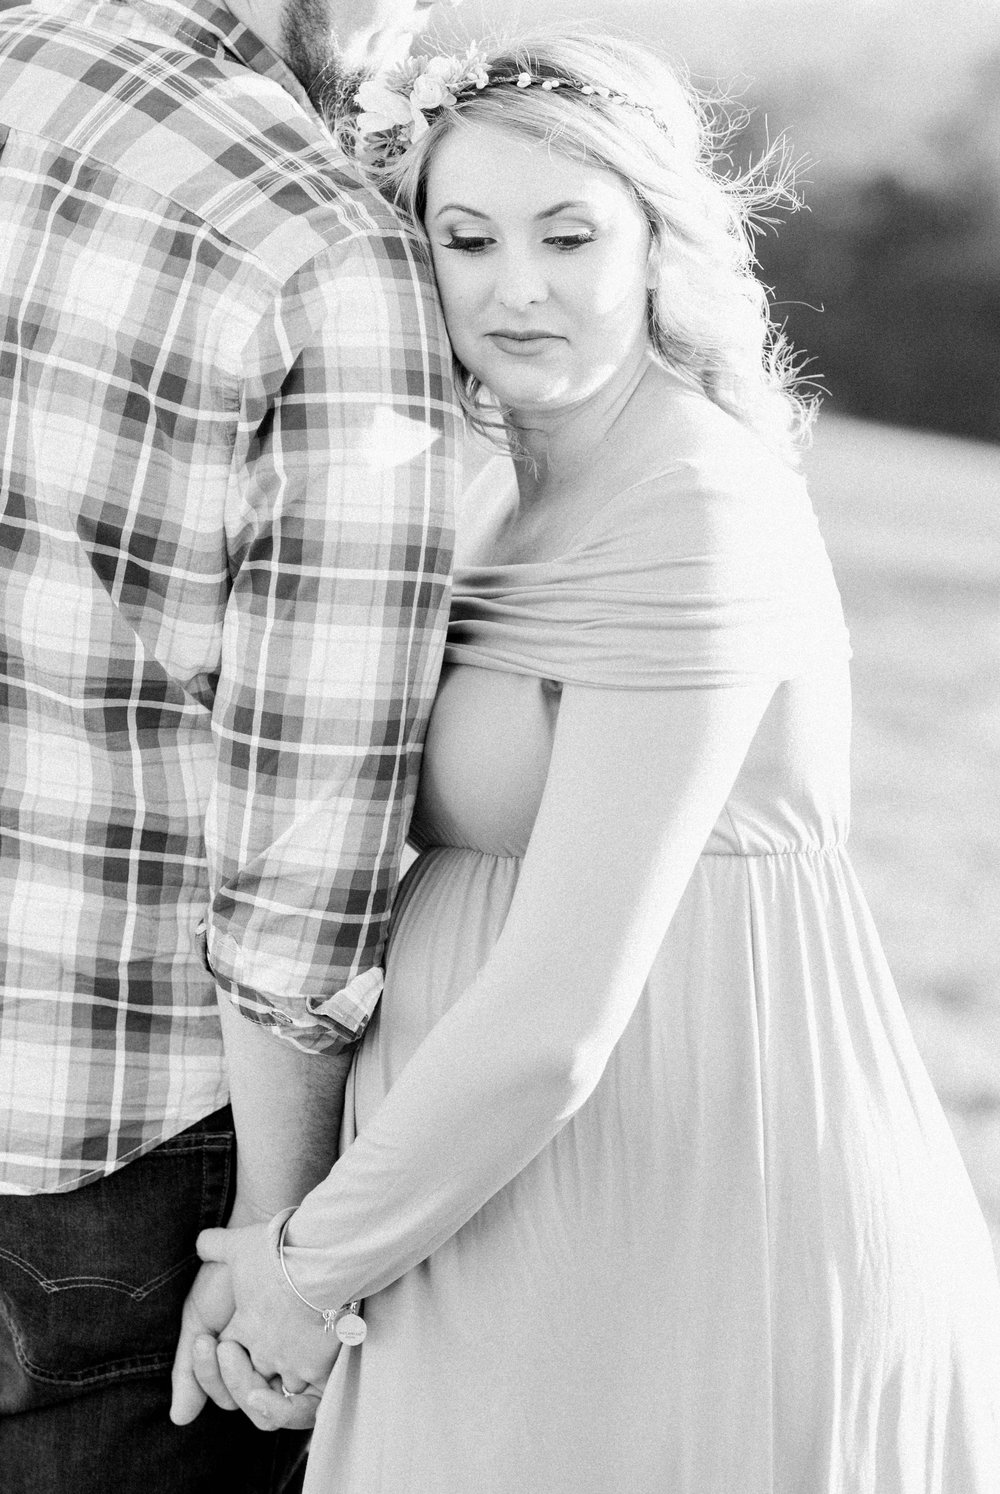 SorellaFarms_Jessica+Dylan_MaternitySession_Virginiaweddingphotographer 25.jpg